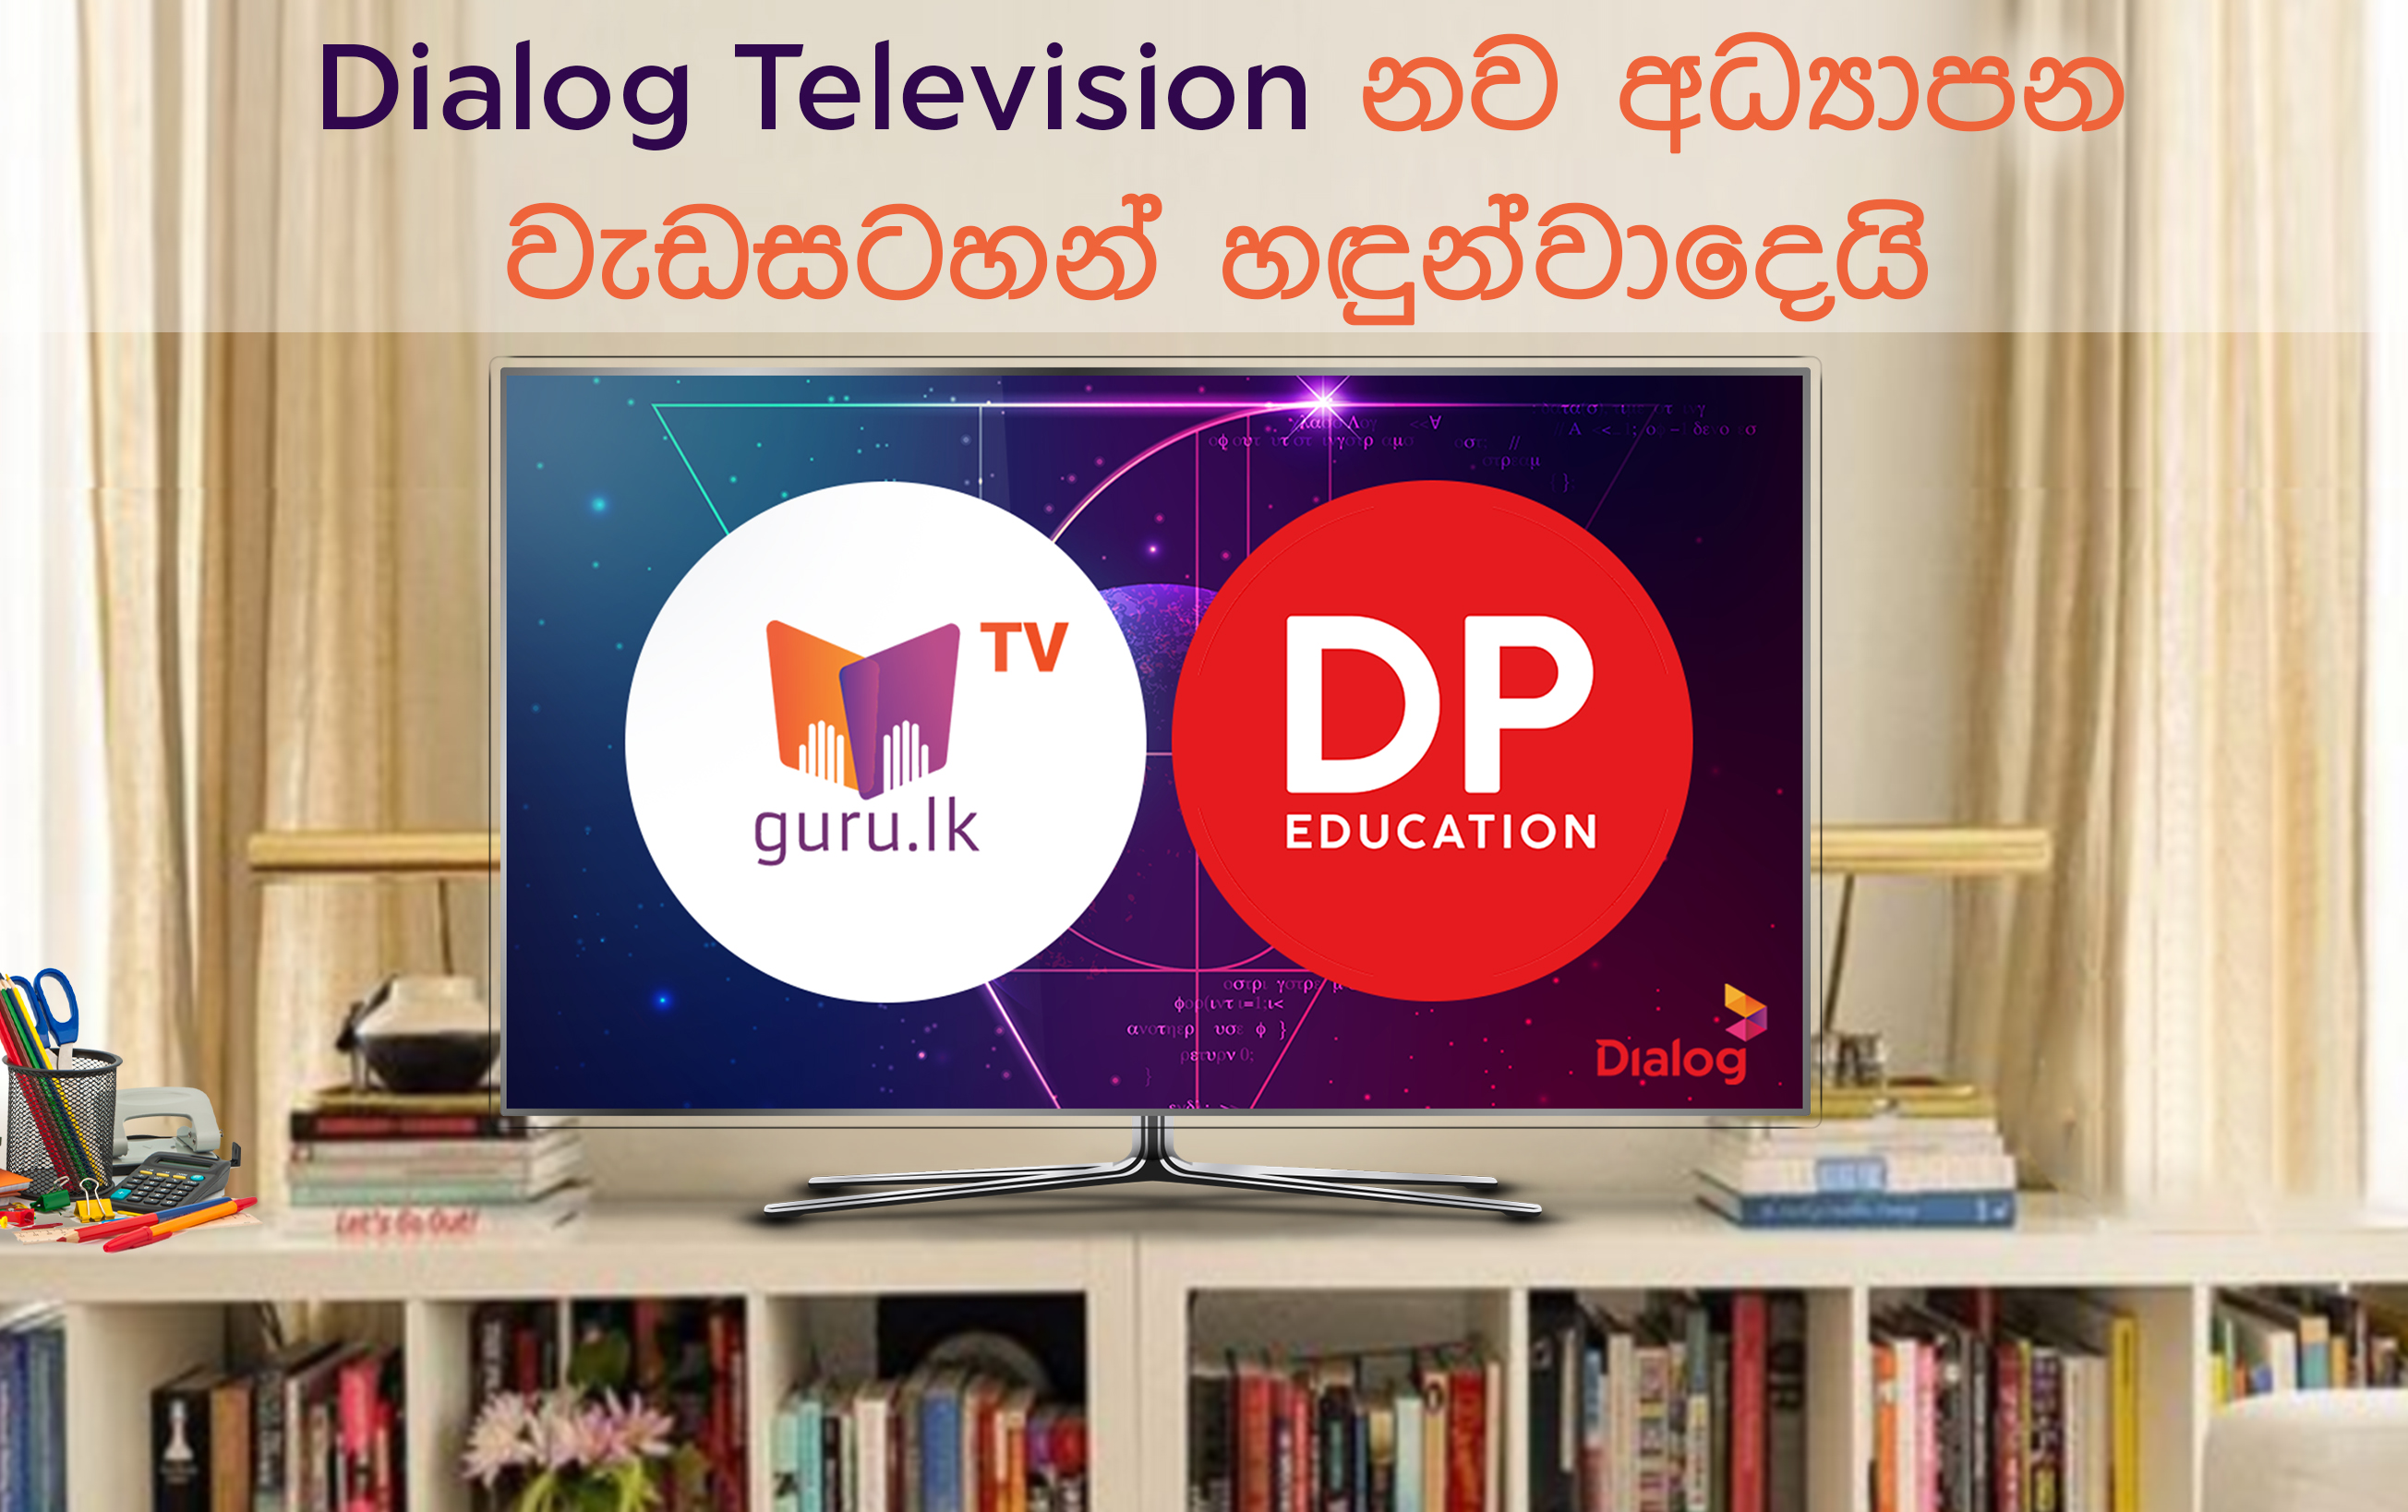 Dialog extends free educational content without any data charges